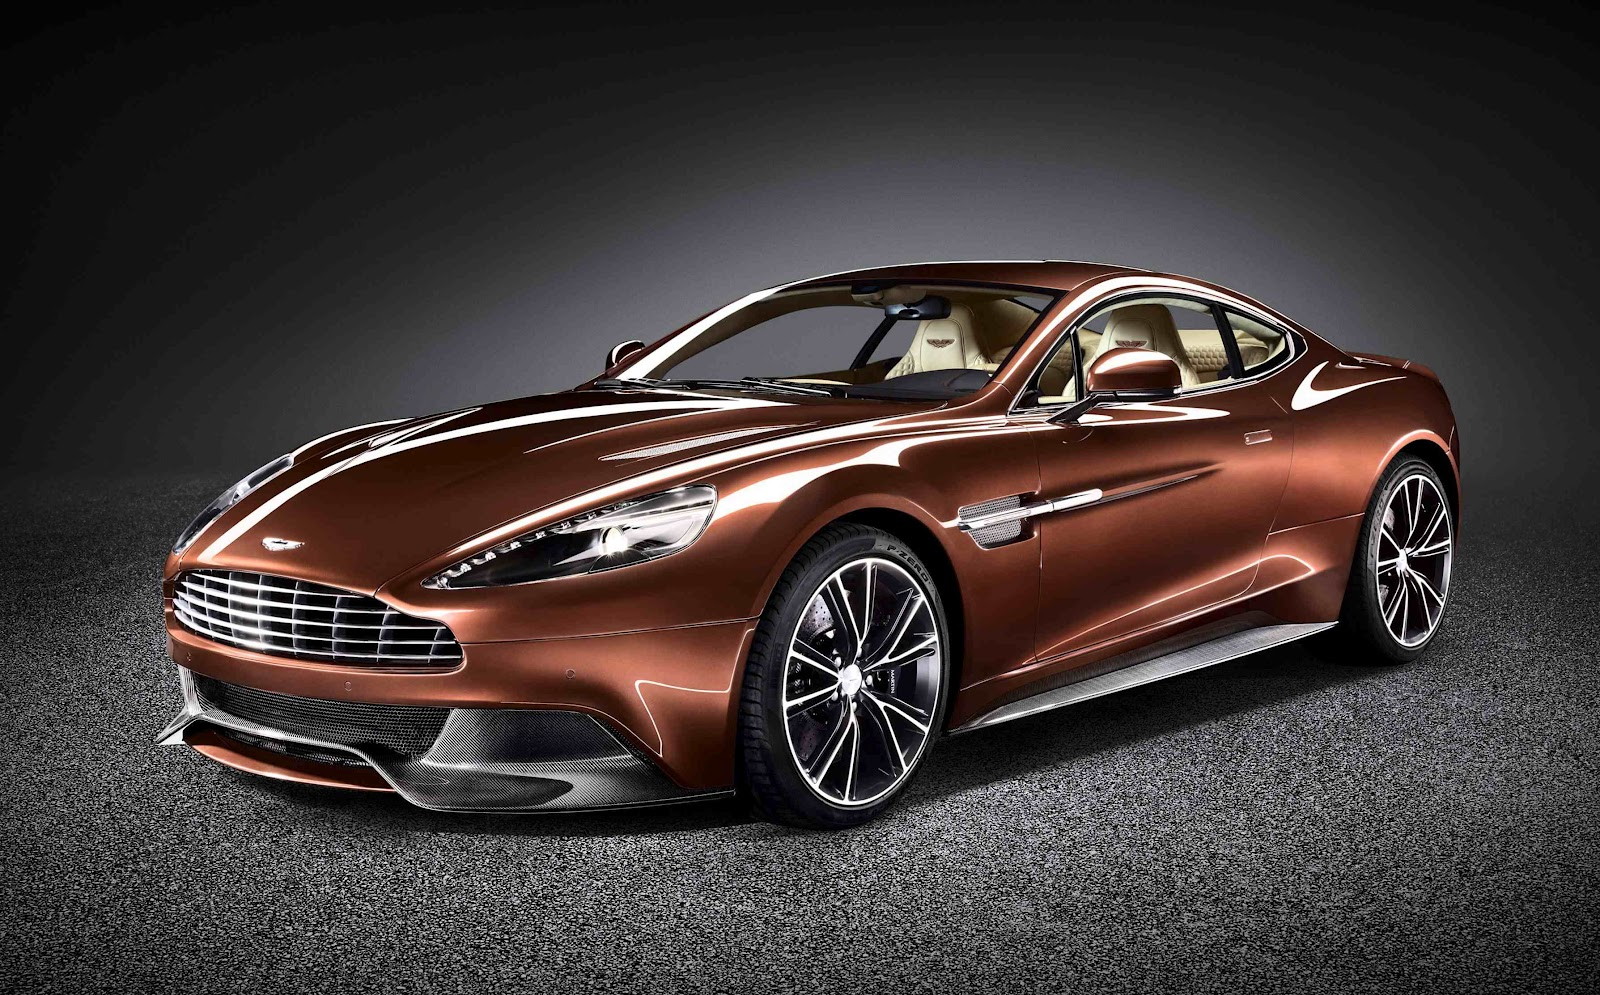 irish car travel magazine aston martin unveils vanquish luxury sports car. Black Bedroom Furniture Sets. Home Design Ideas